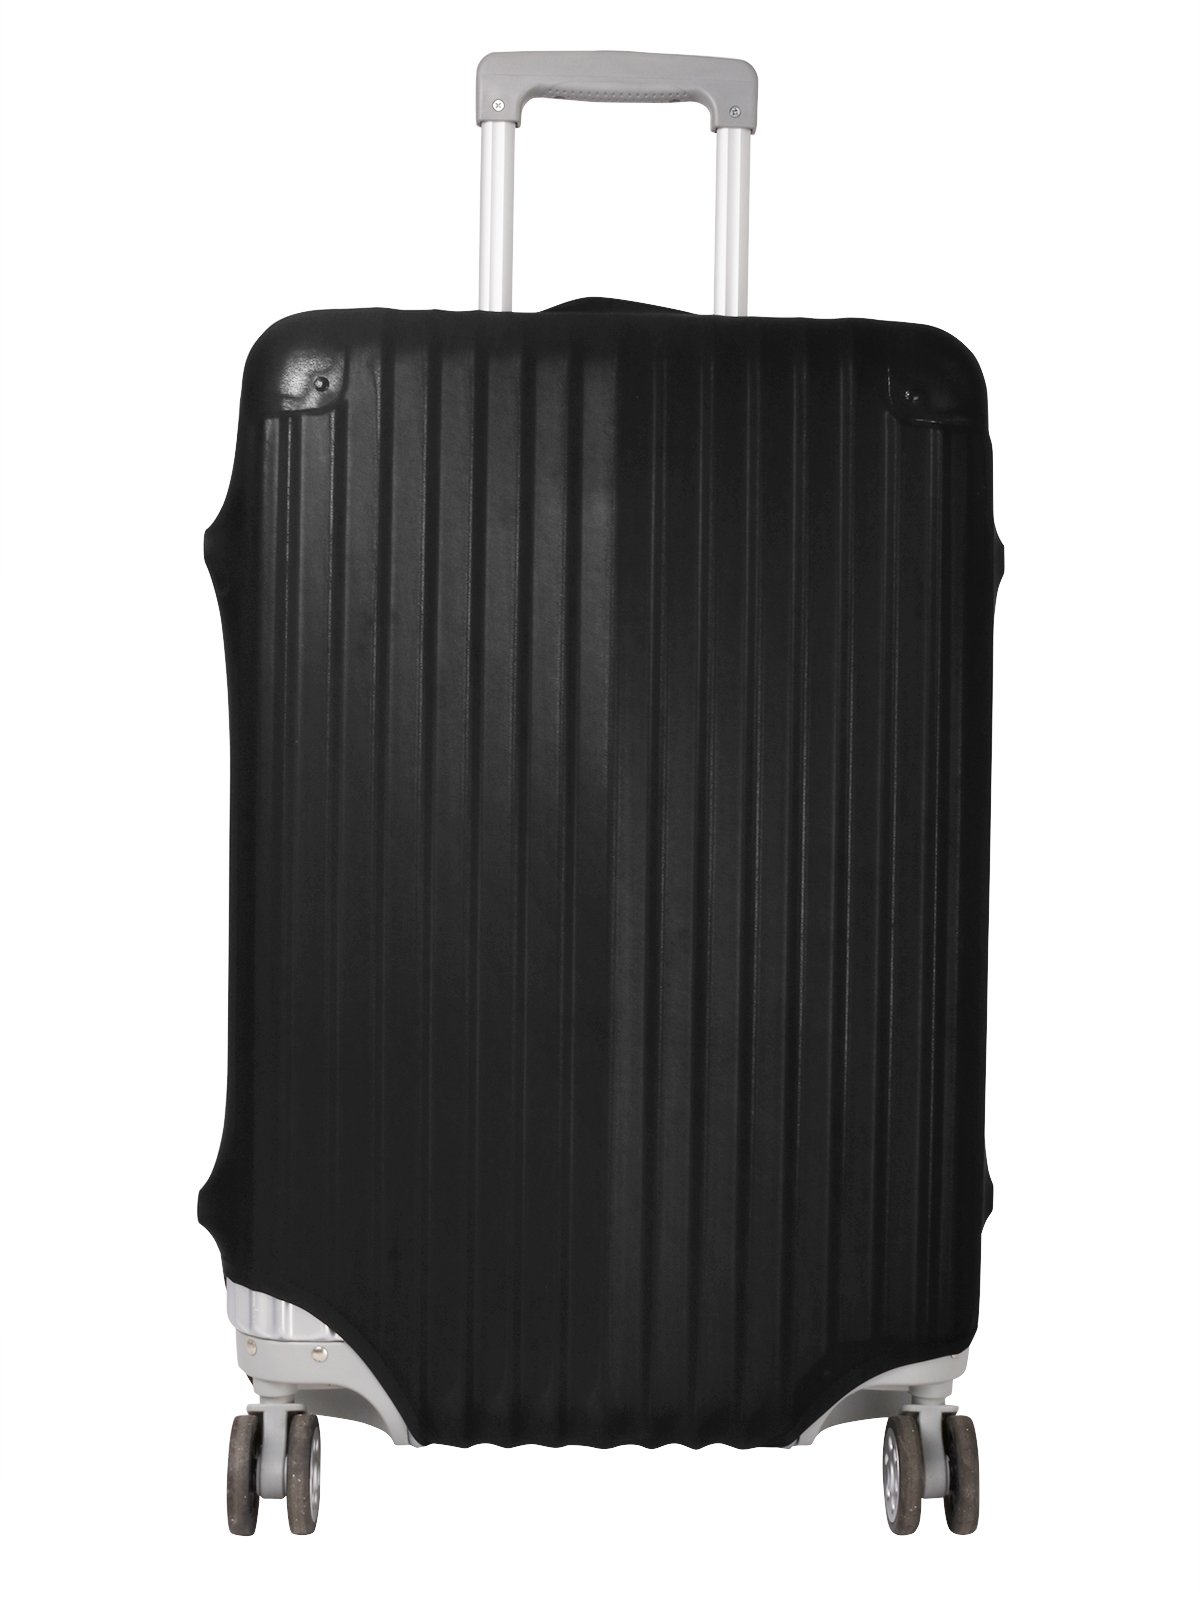 TiaoBug Anti-Scratch Travel Luggage Cover Suitcase Protector Fits 18-30 Inch Luggage (Large (Fits 26-30 Inch Luggage), Black)